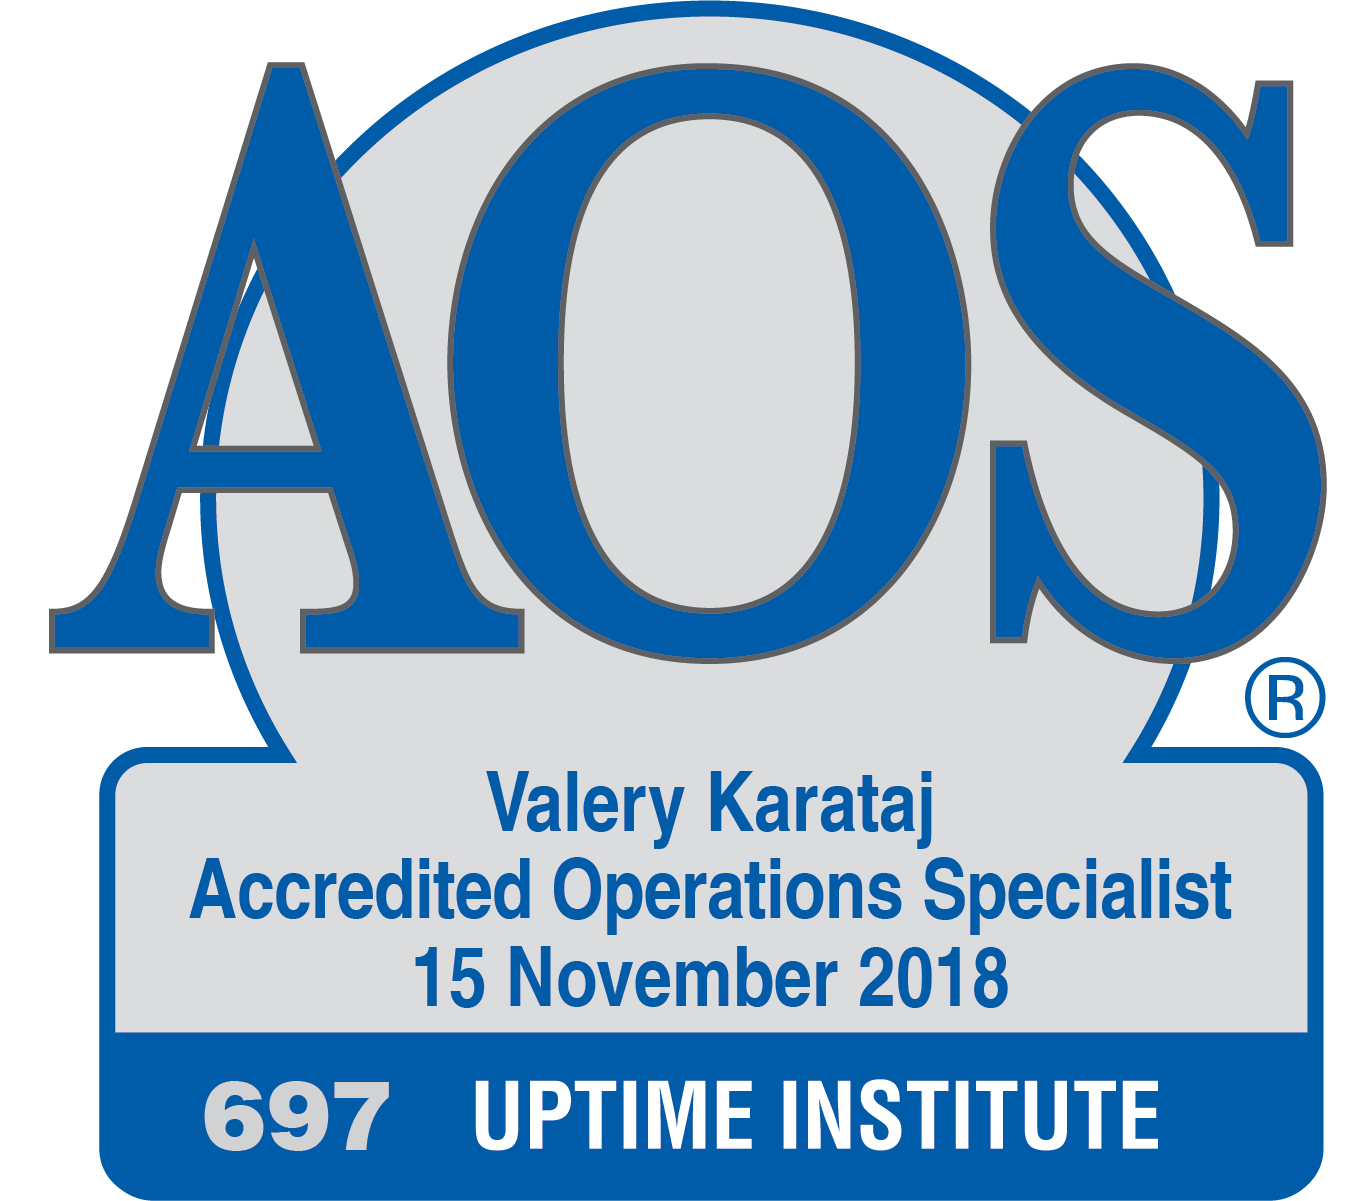 Accredited Operations Specialist Roster - Uptime Institute LLC